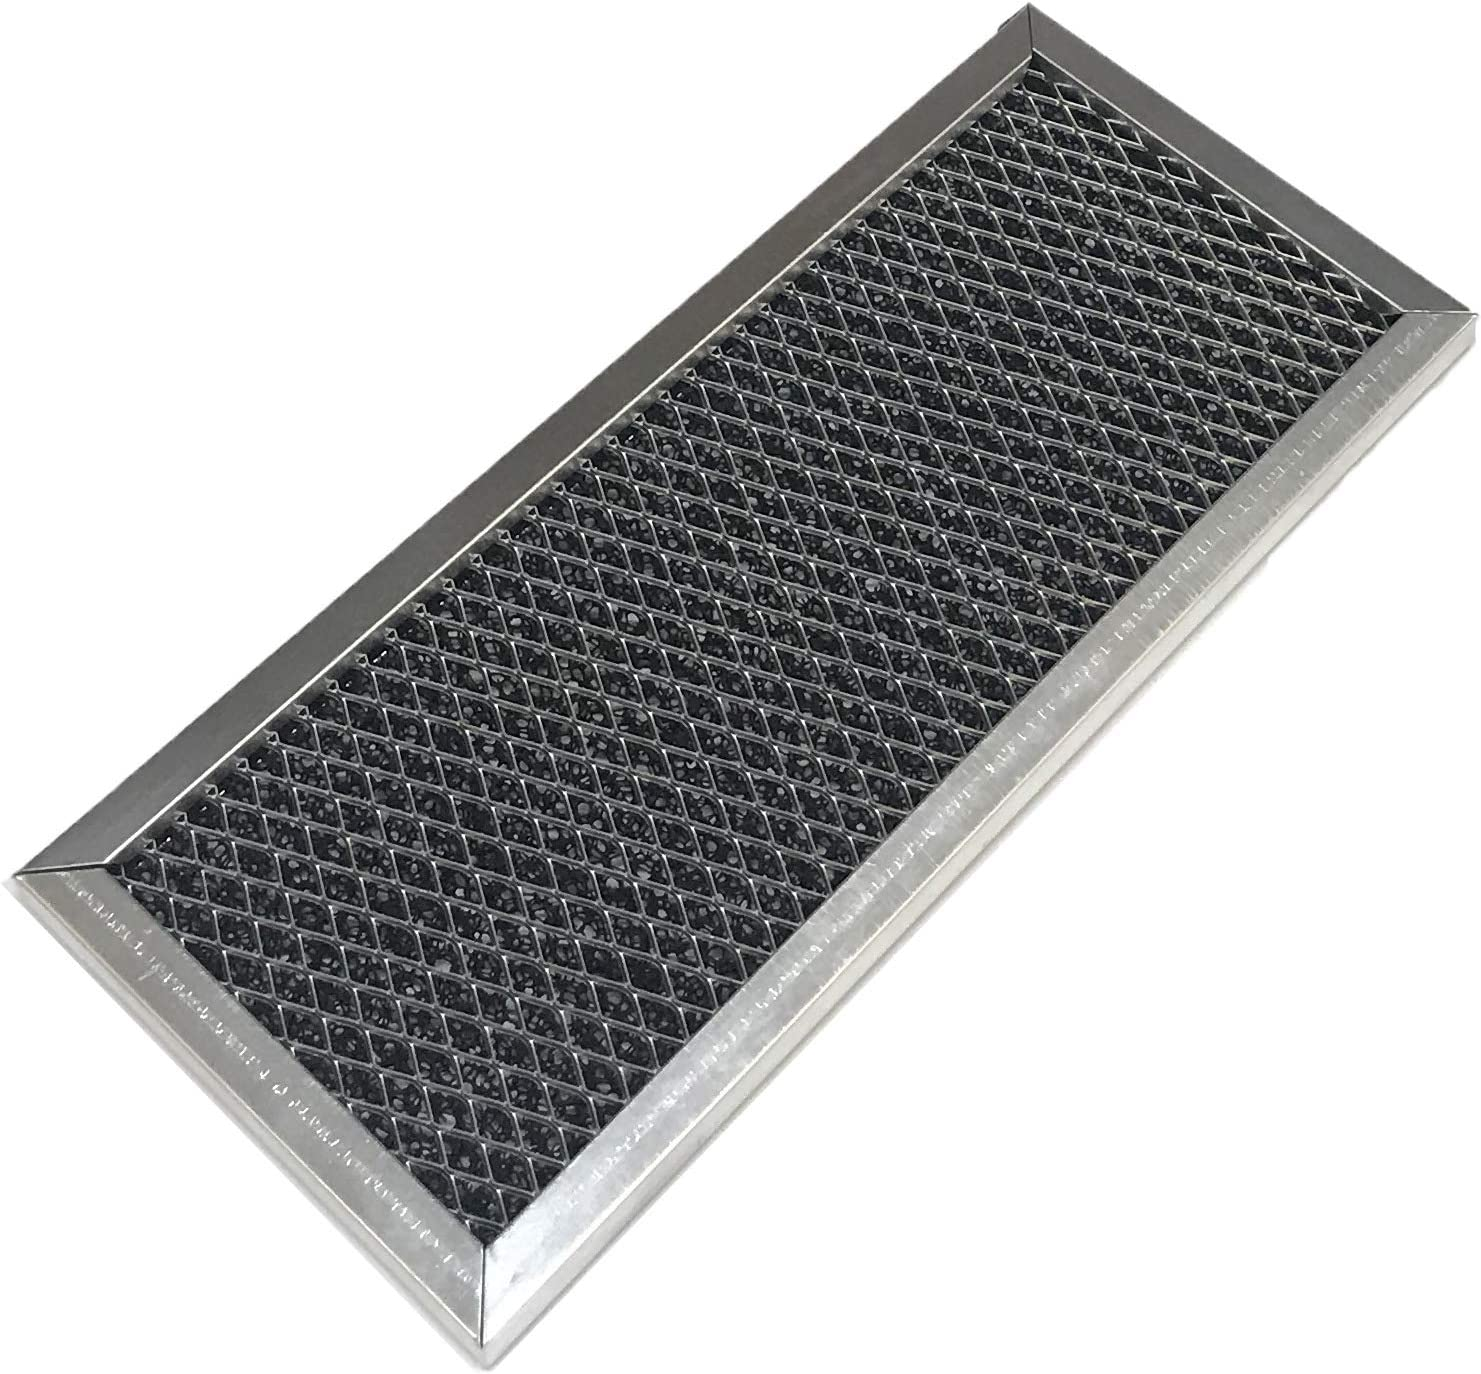 OEM Samsung Microwave CHARCOAL Filter Shipped With ME21K7010DG, ME21K7010DG/AA, ME21K7010DS, ME21K7010DS/AA, ME21K7010DS/AC